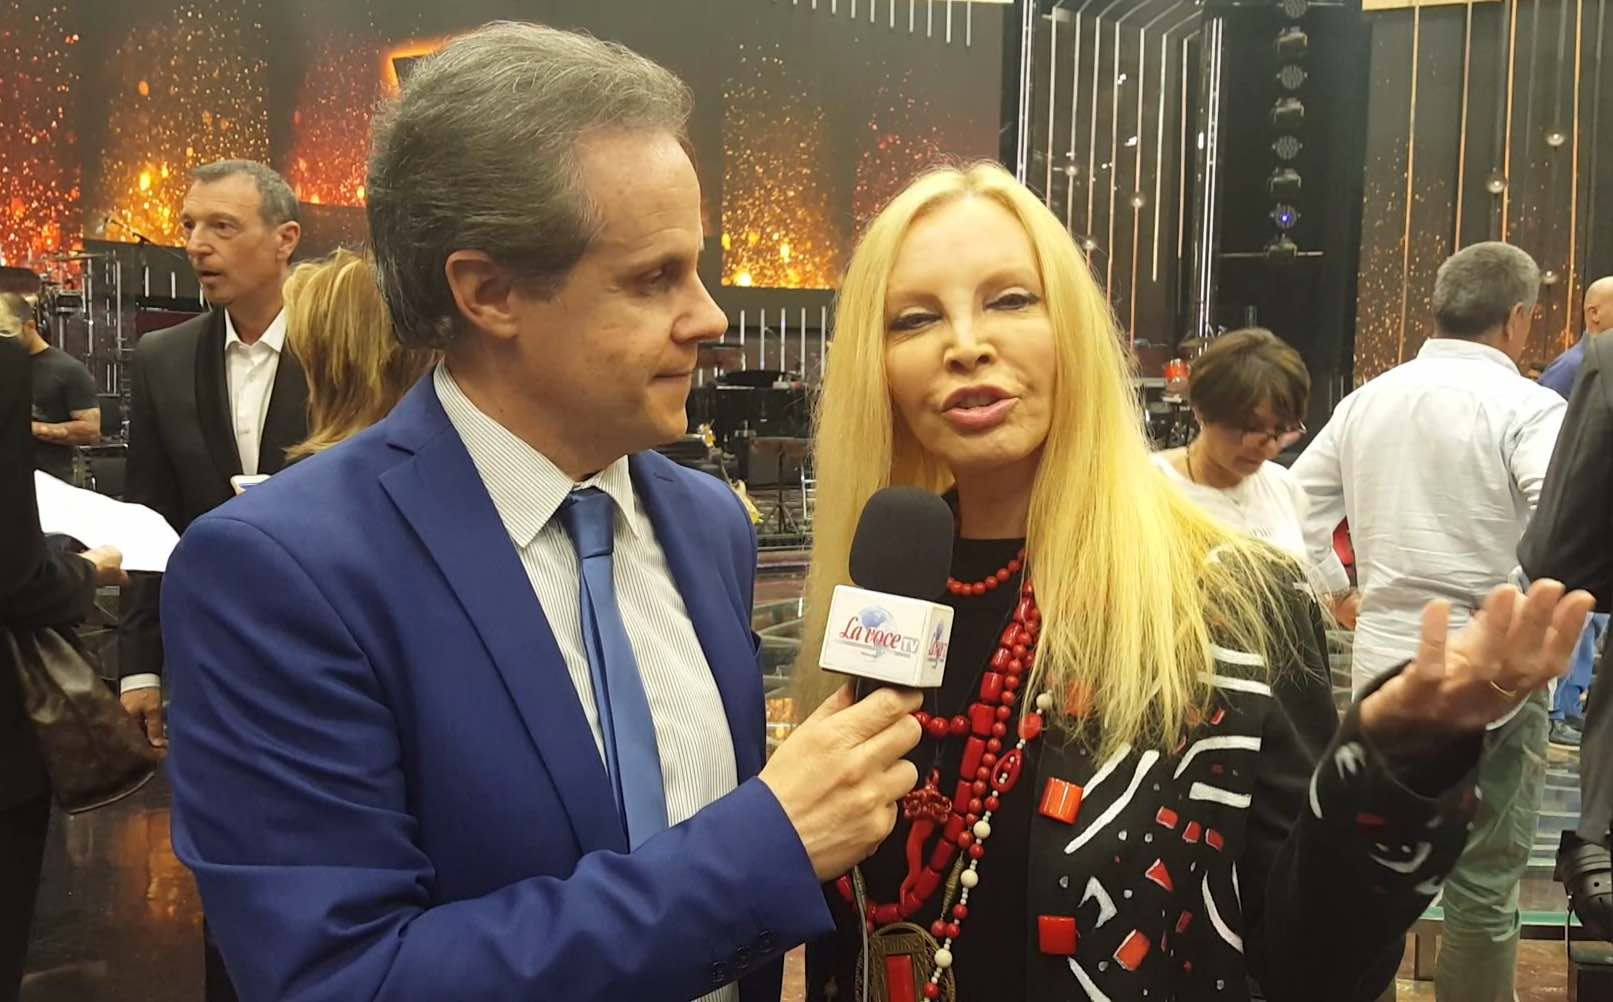 Patty Pravo intervistata da Emilio Buttaro